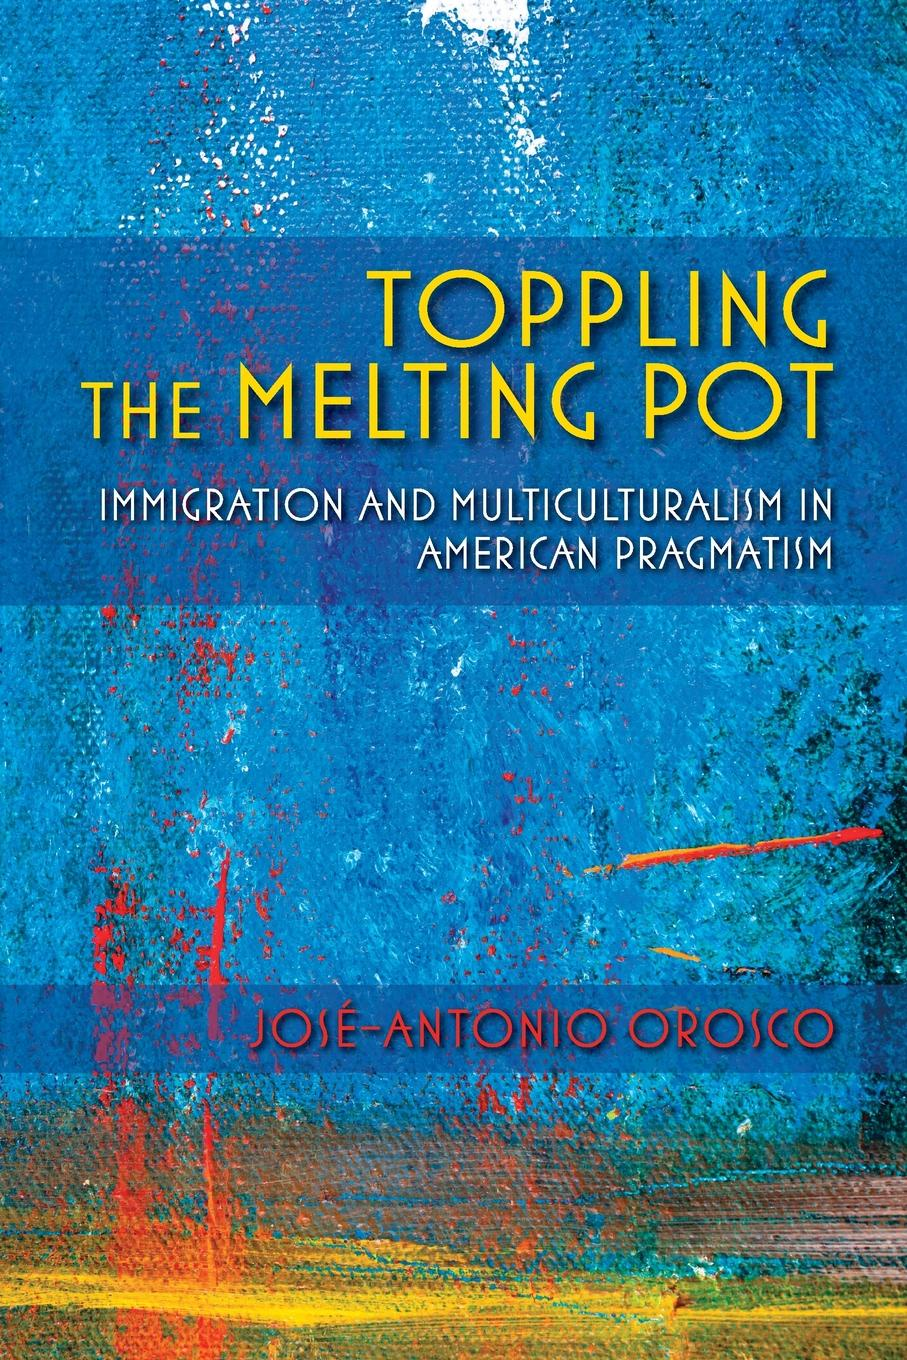 Jose-Antonio Orosco Toppling the Melting Pot. Immigration and Multiculturalism in American Pragmatism melting the ice